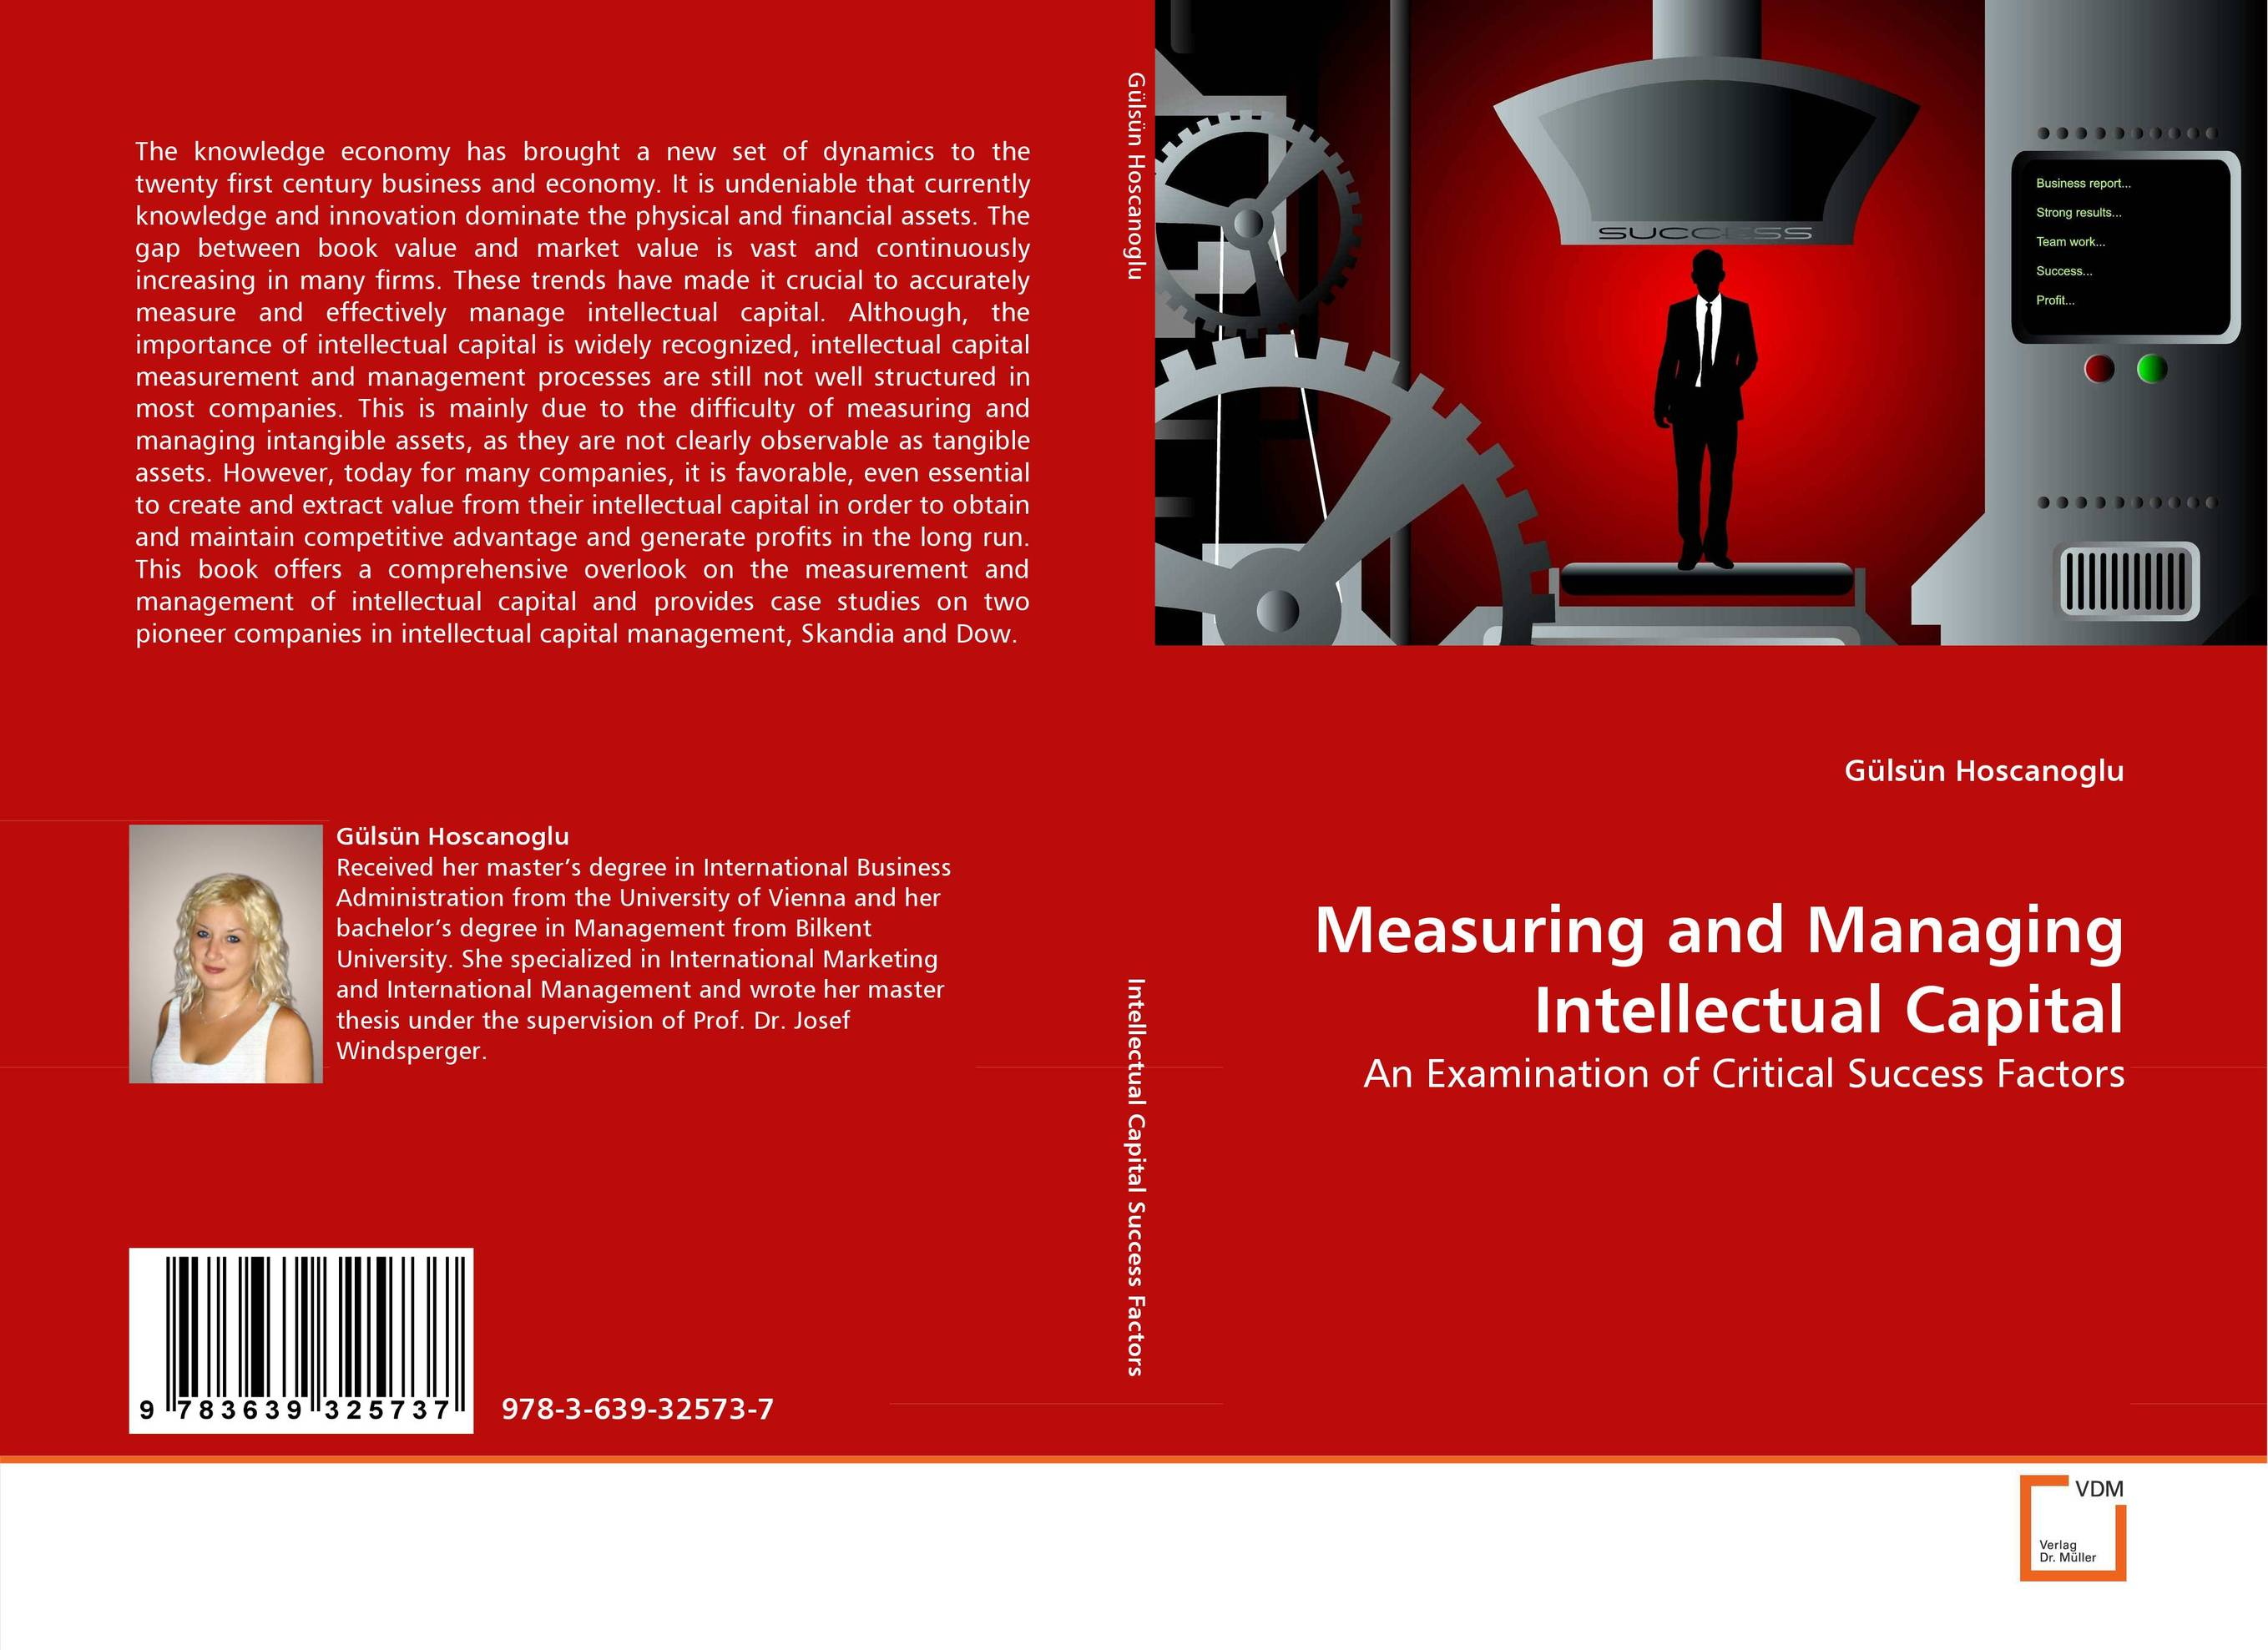 Measuring and Managing Intellectual Capital managing the store